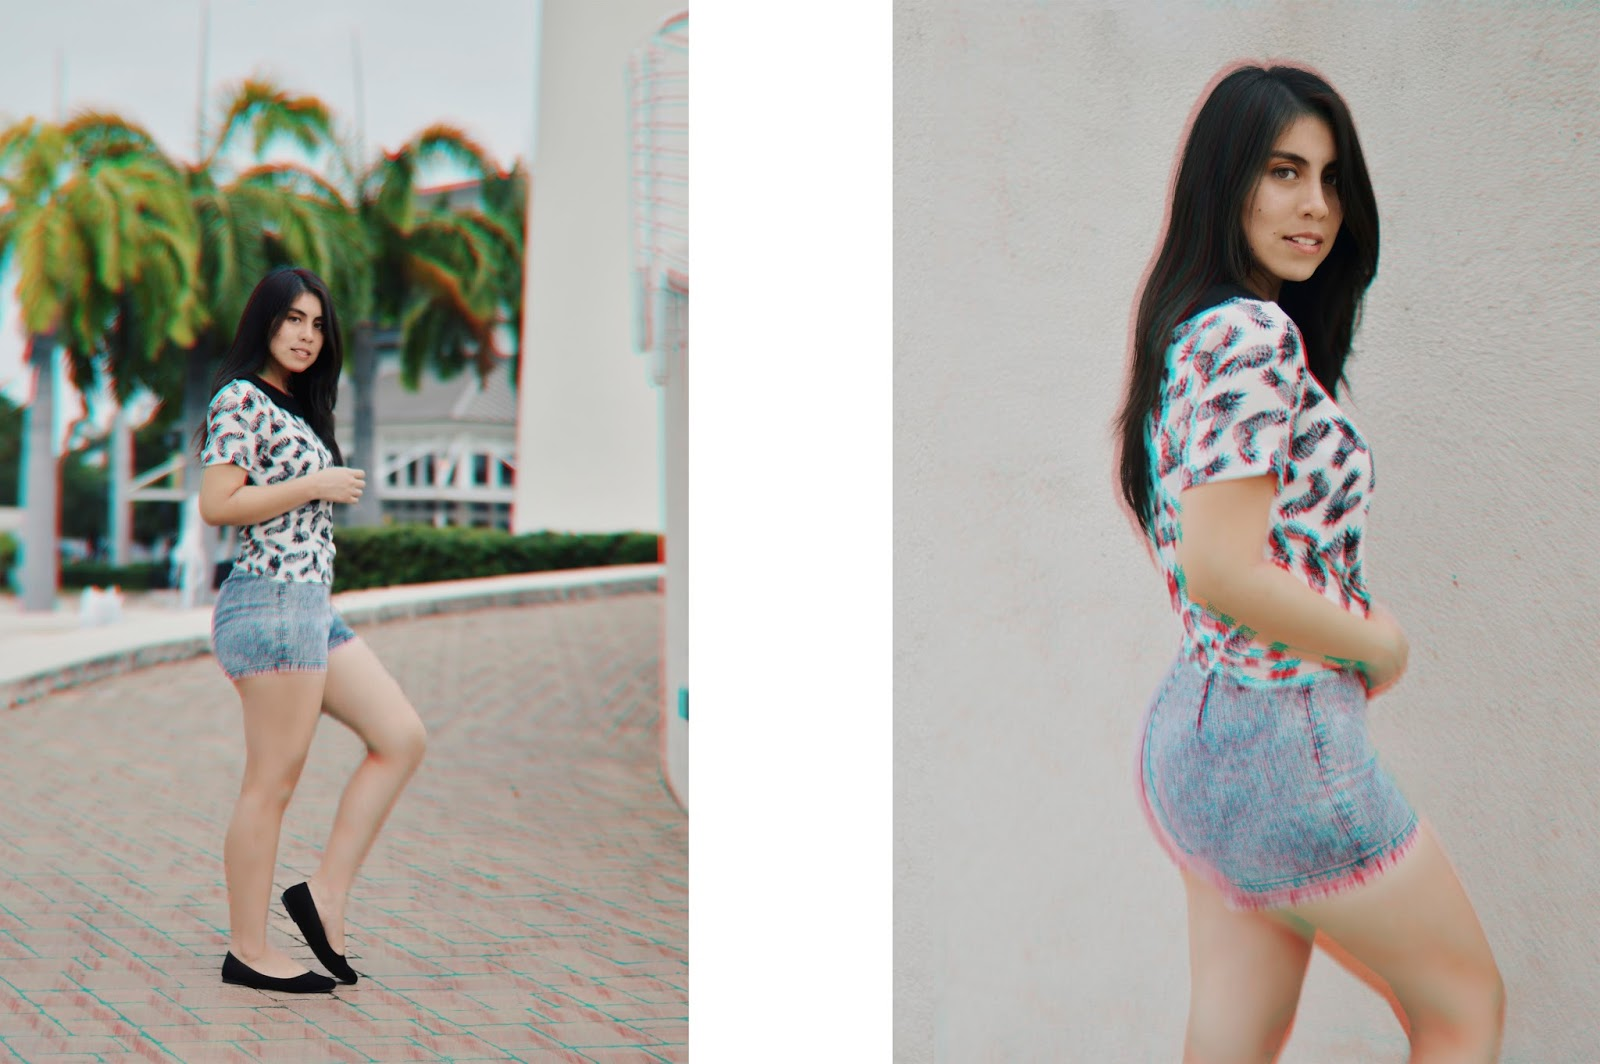 silvia-armas-si-y-no-guia-como-usar-shorts-how-to-wear-combine-guide-denim-travel-photoshoot-tumblr-girl-style-fashion-blogger-ecuador-miami